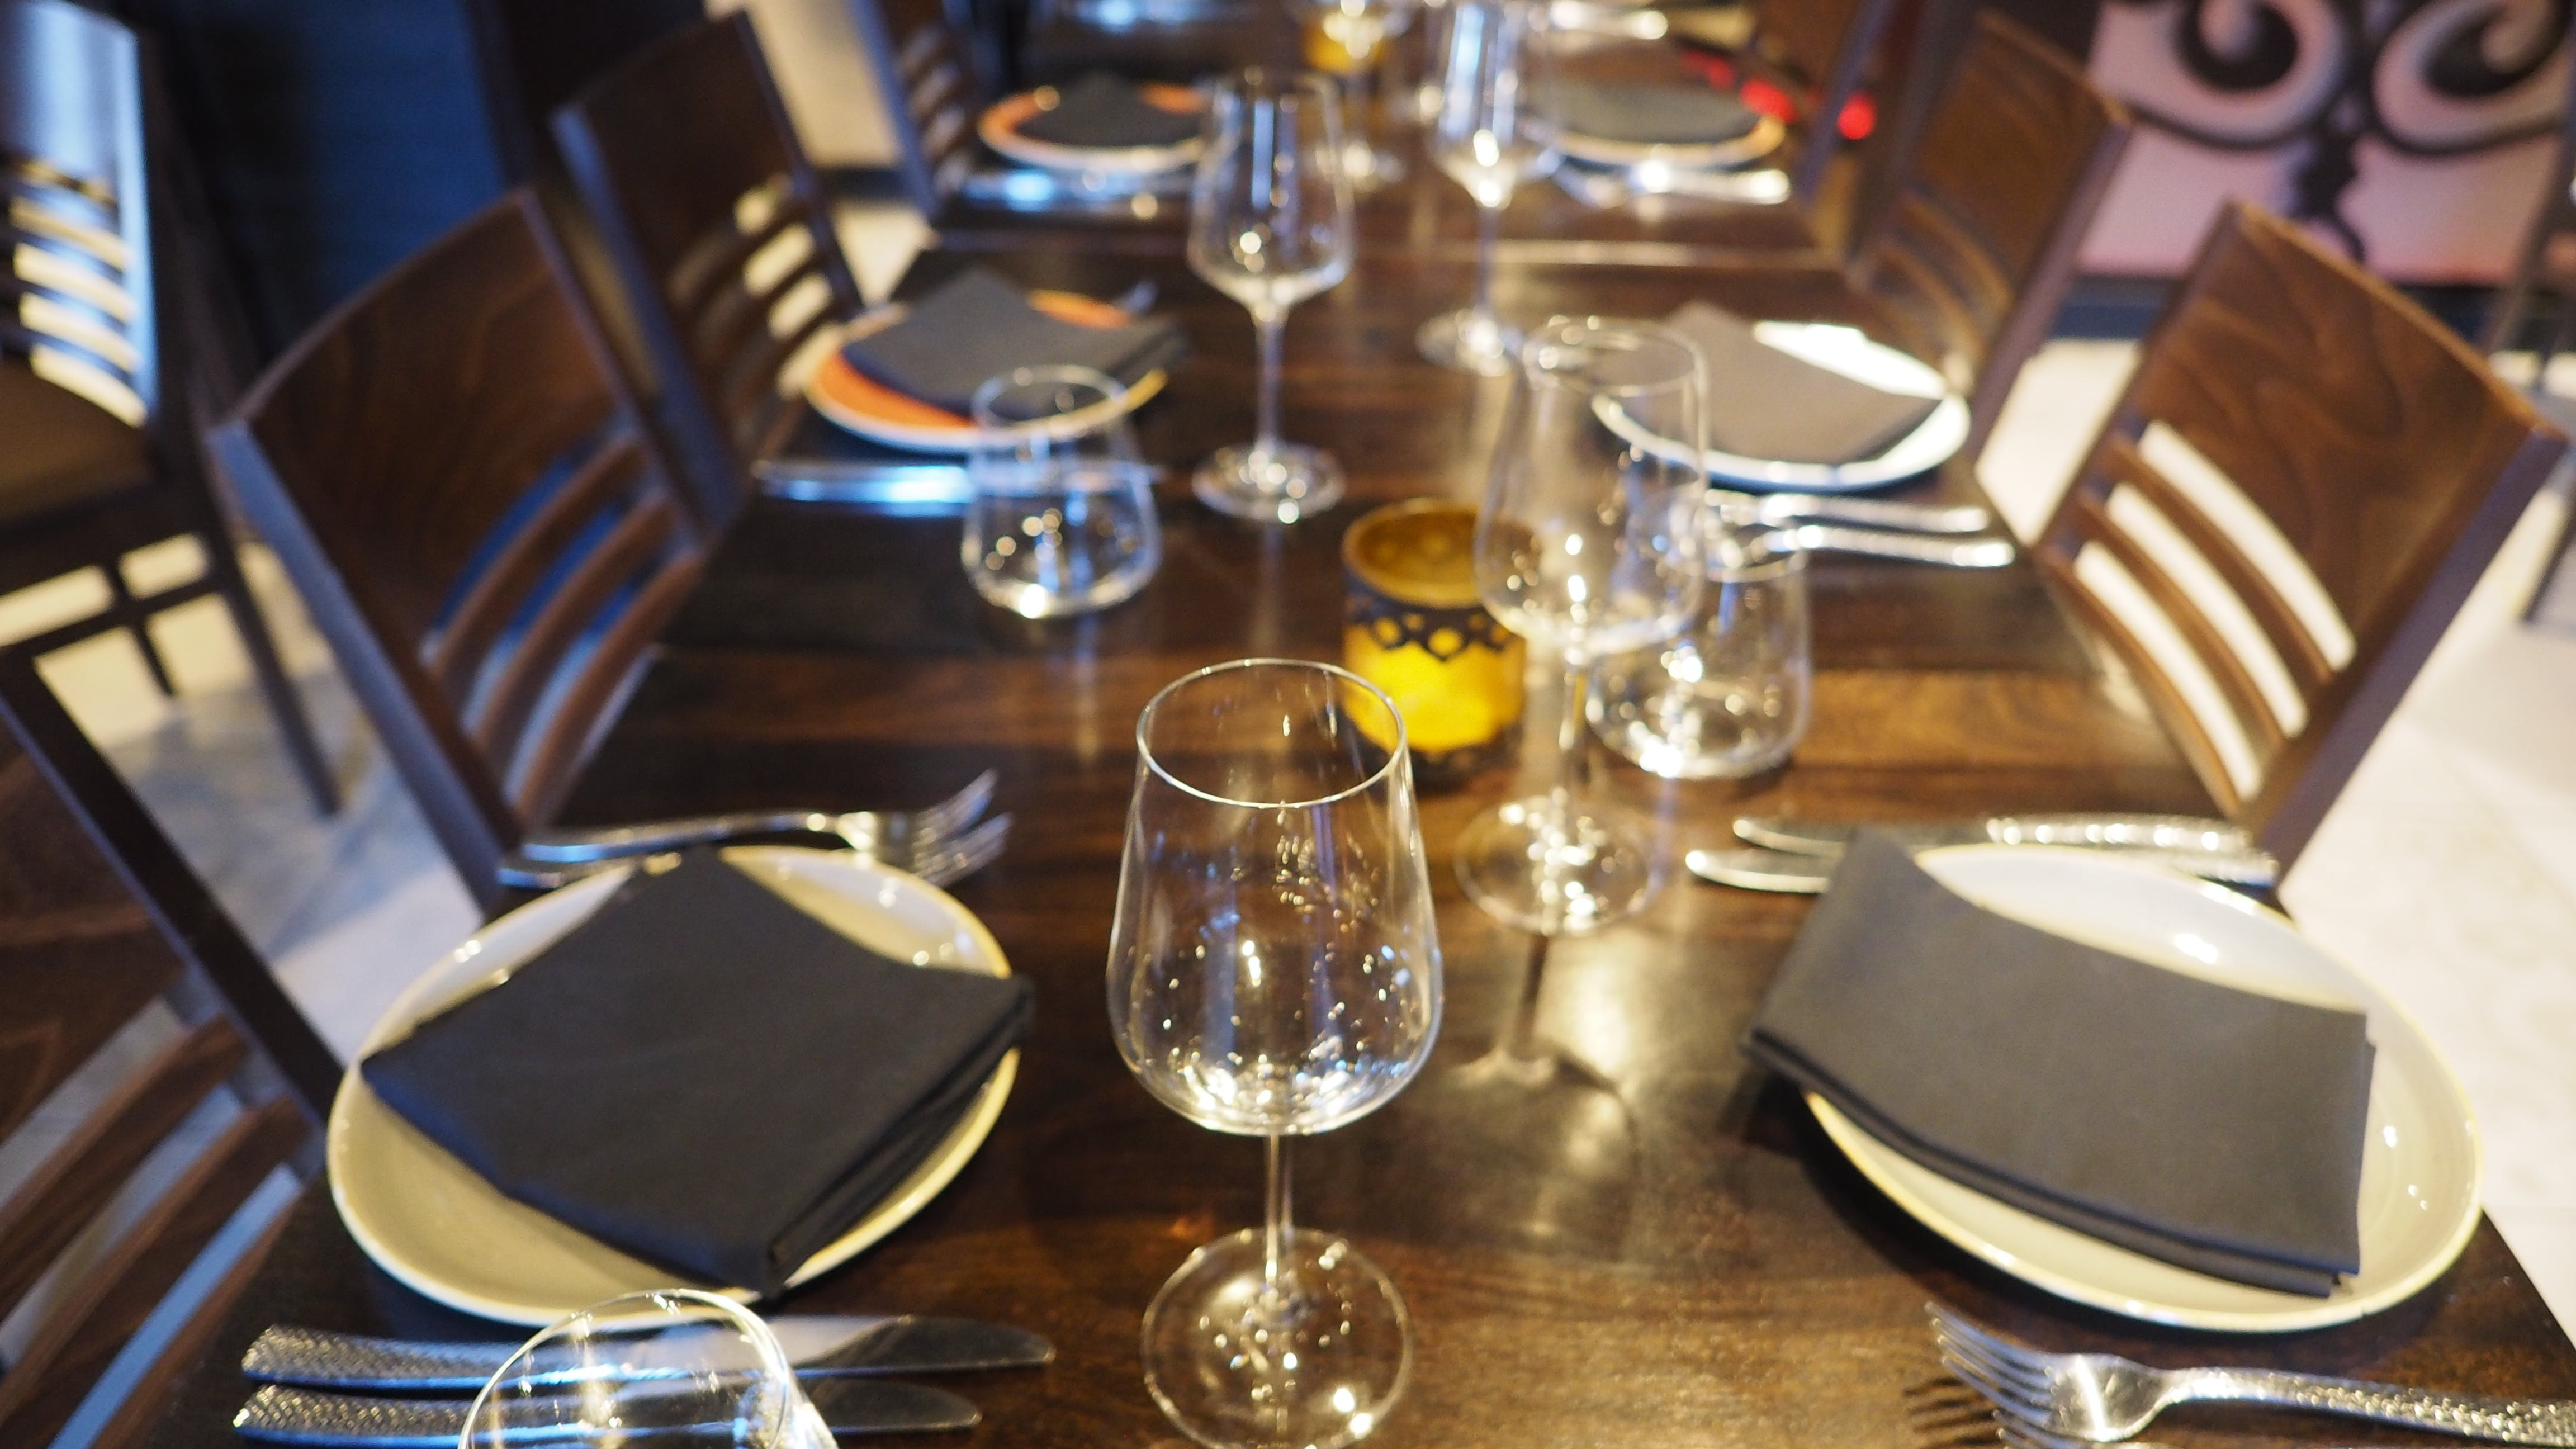 Free stock photo of restaurant, set table, table, wine glas